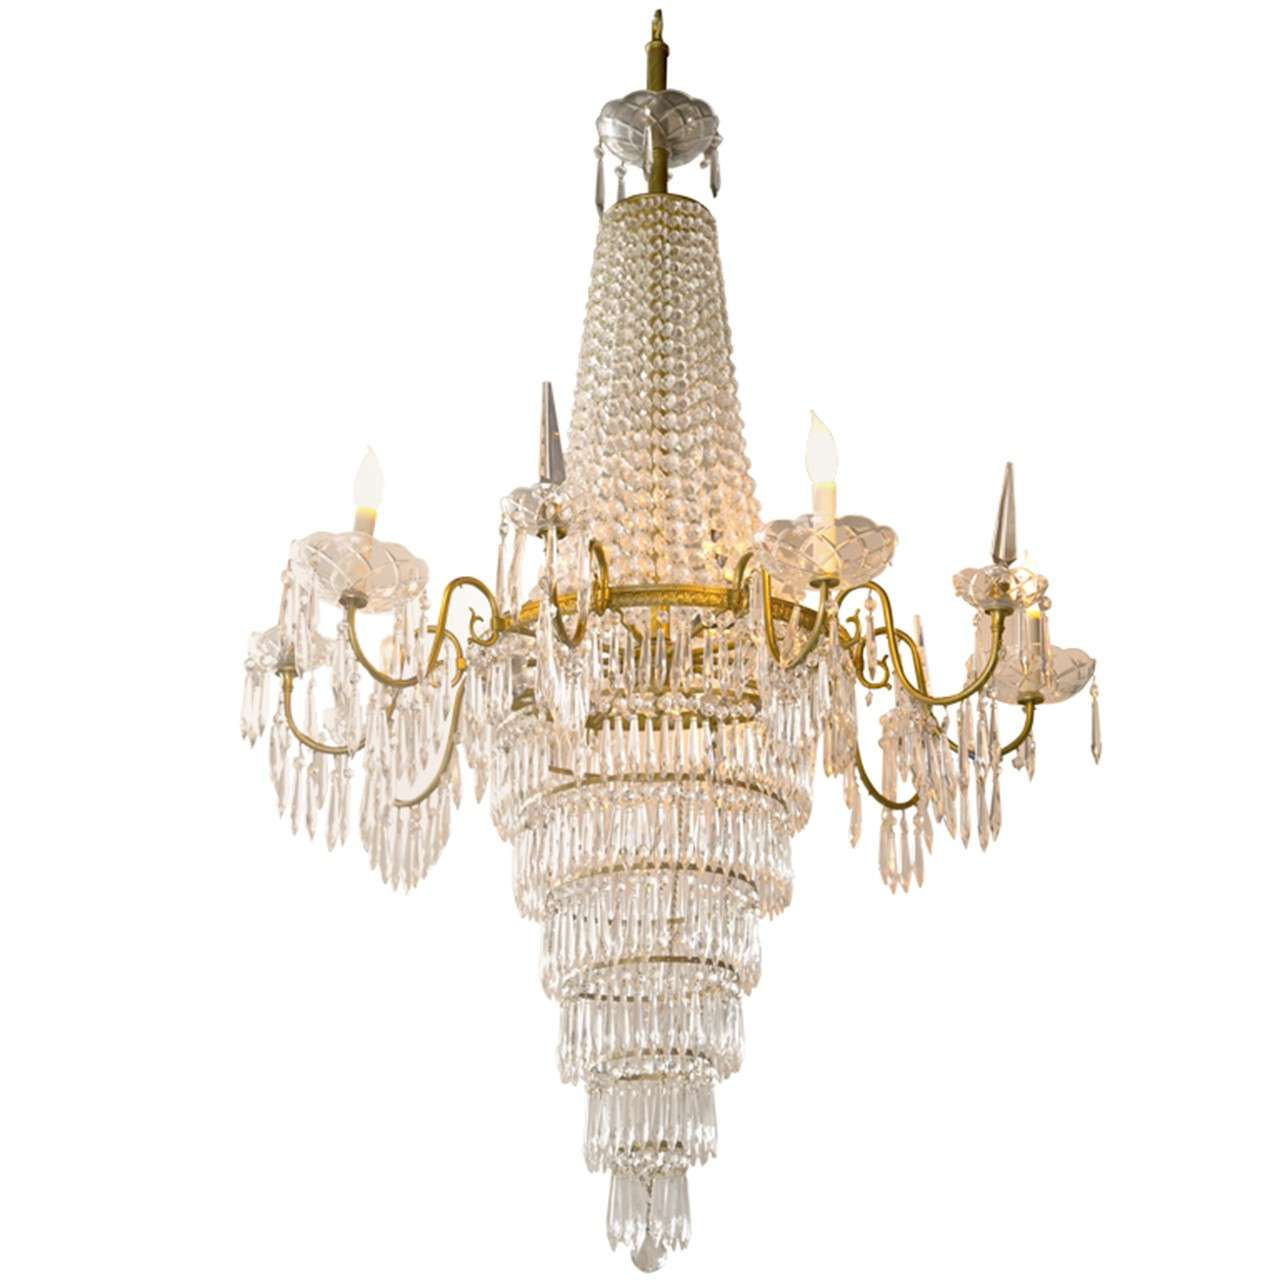 French Empire Style Crystal Chandelier Nine Bronze Arms With Prisms And Bobeches